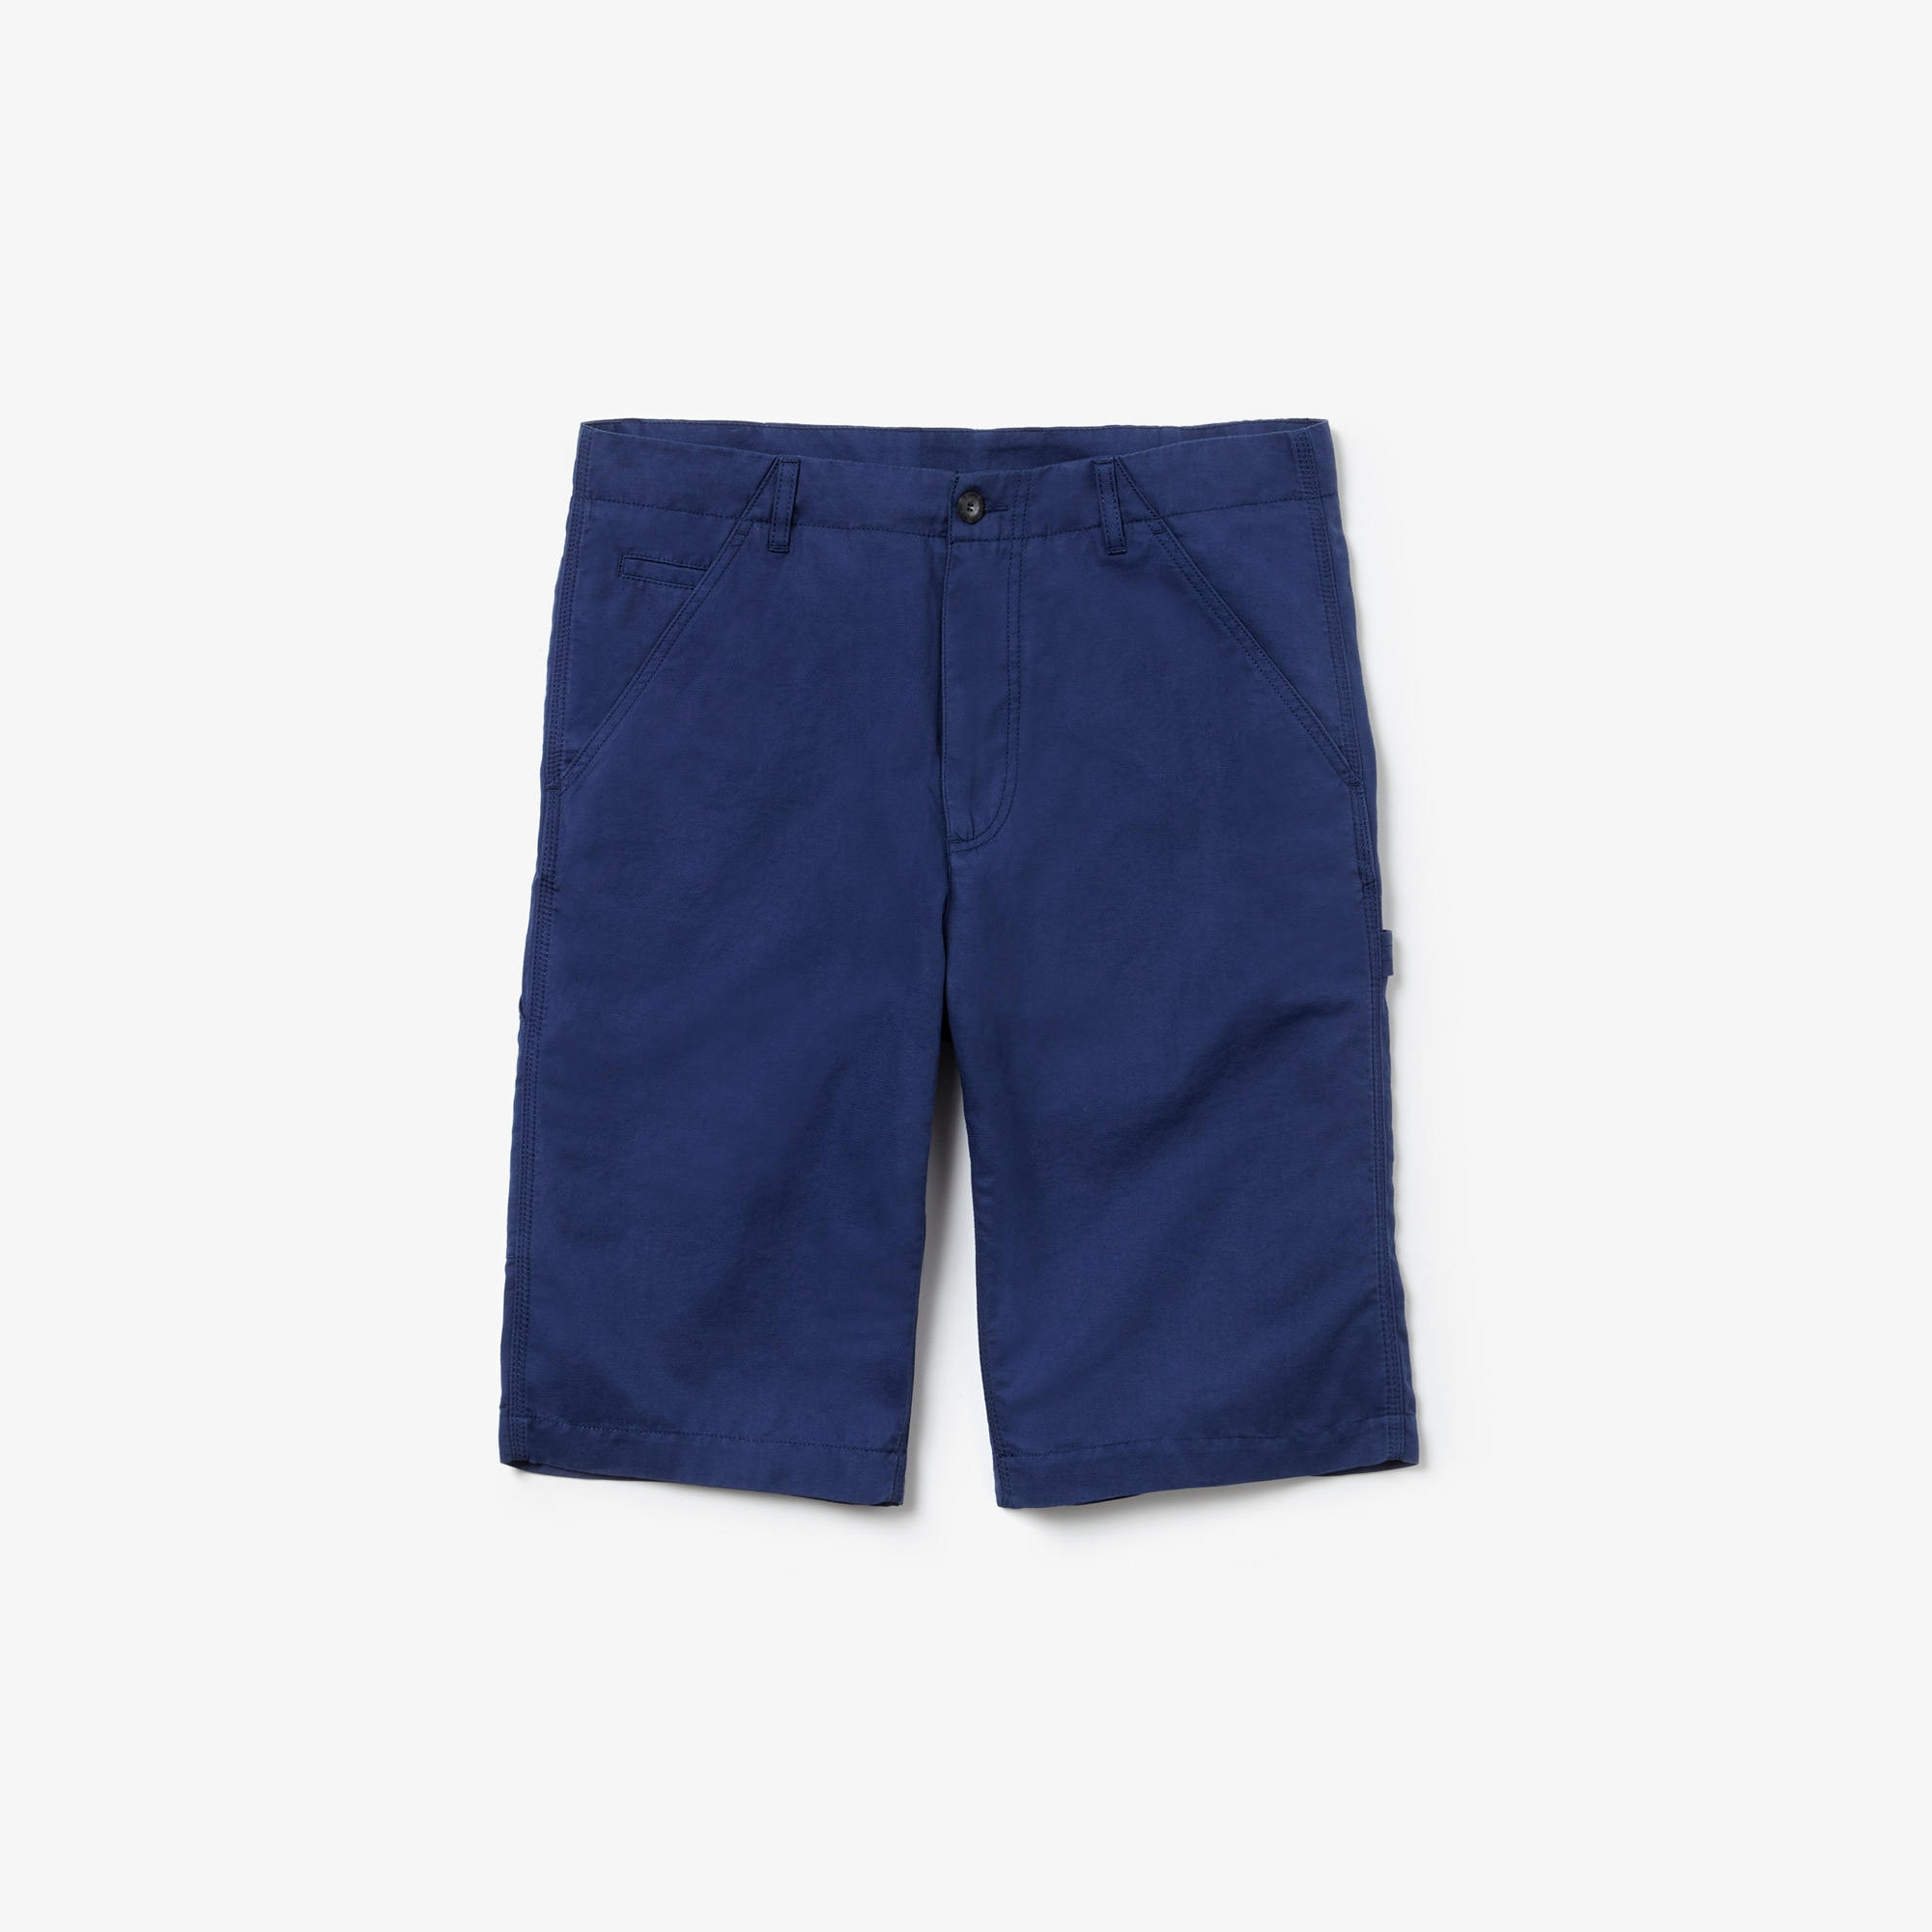 Men's Regular Fit Cotton And Linen Shorts